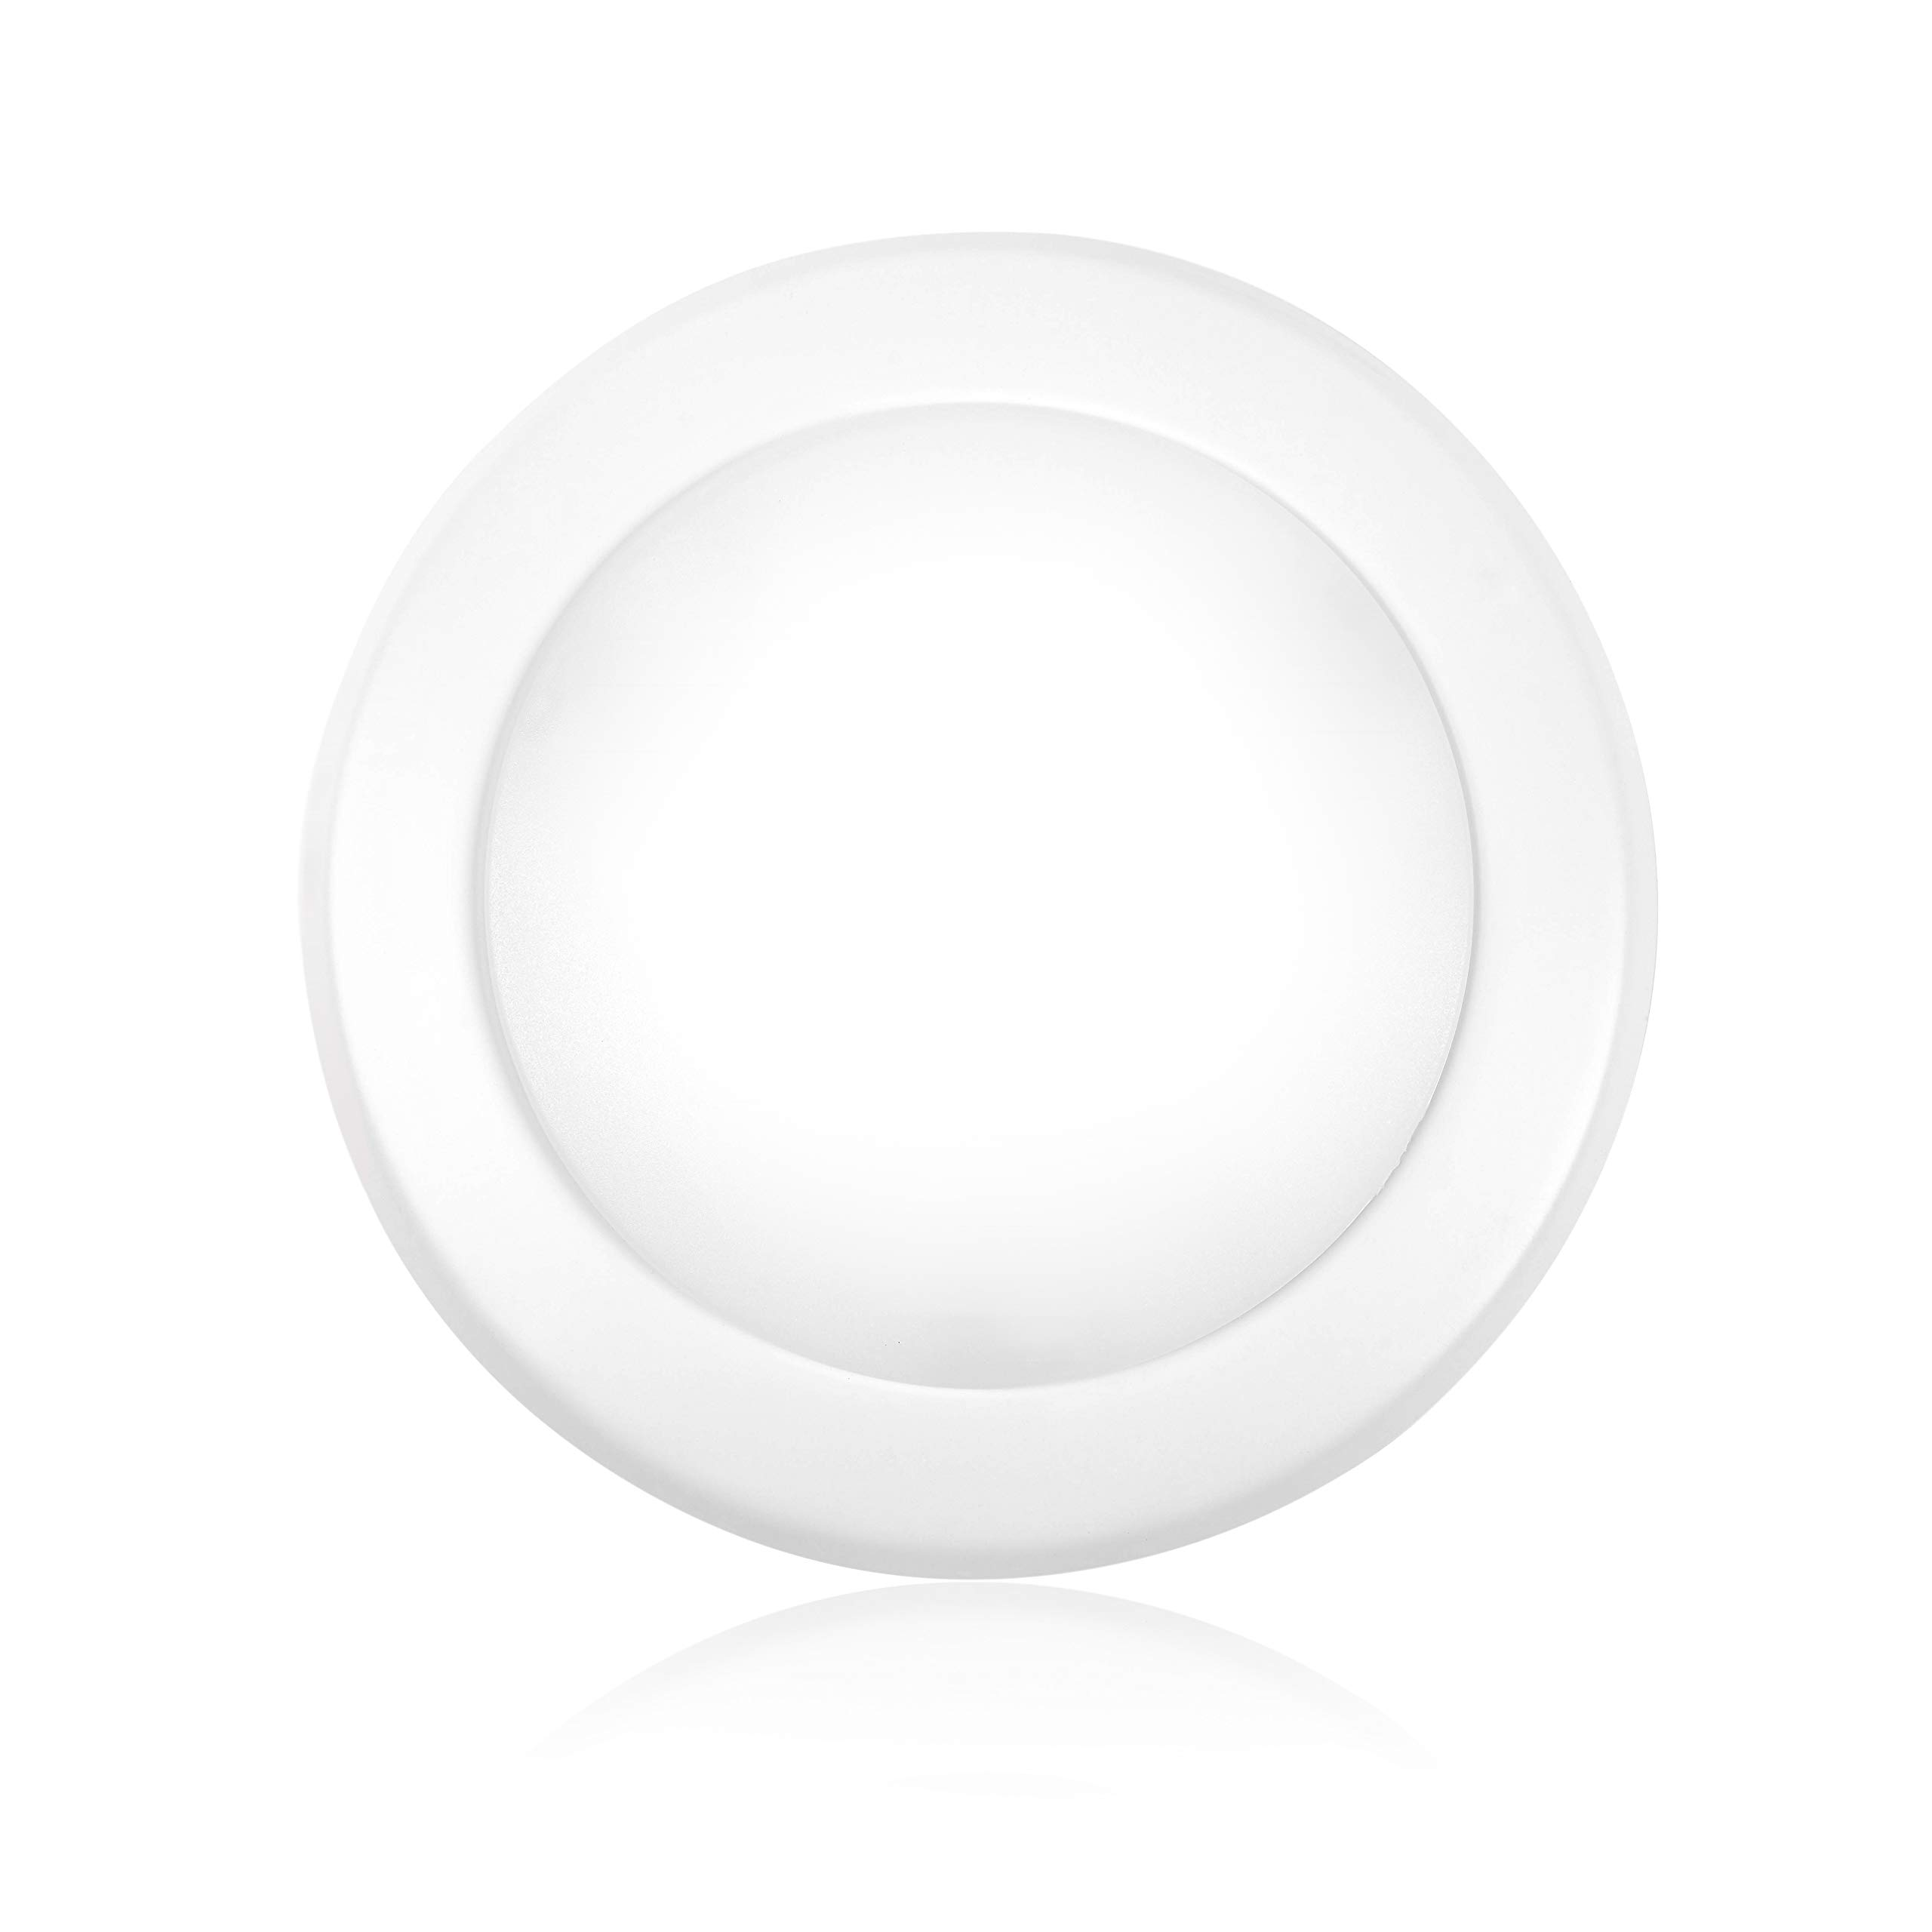 """Parmida (1 Pack) 5/6"""" Dimmable LED Disk Light Flush Mount Recessed Retrofit Ceiling Lights, 15W (120W Replacement), 5000K (Day Light), Energy Star, Installs into Junction Box Or Recessed Can, 1050lm"""